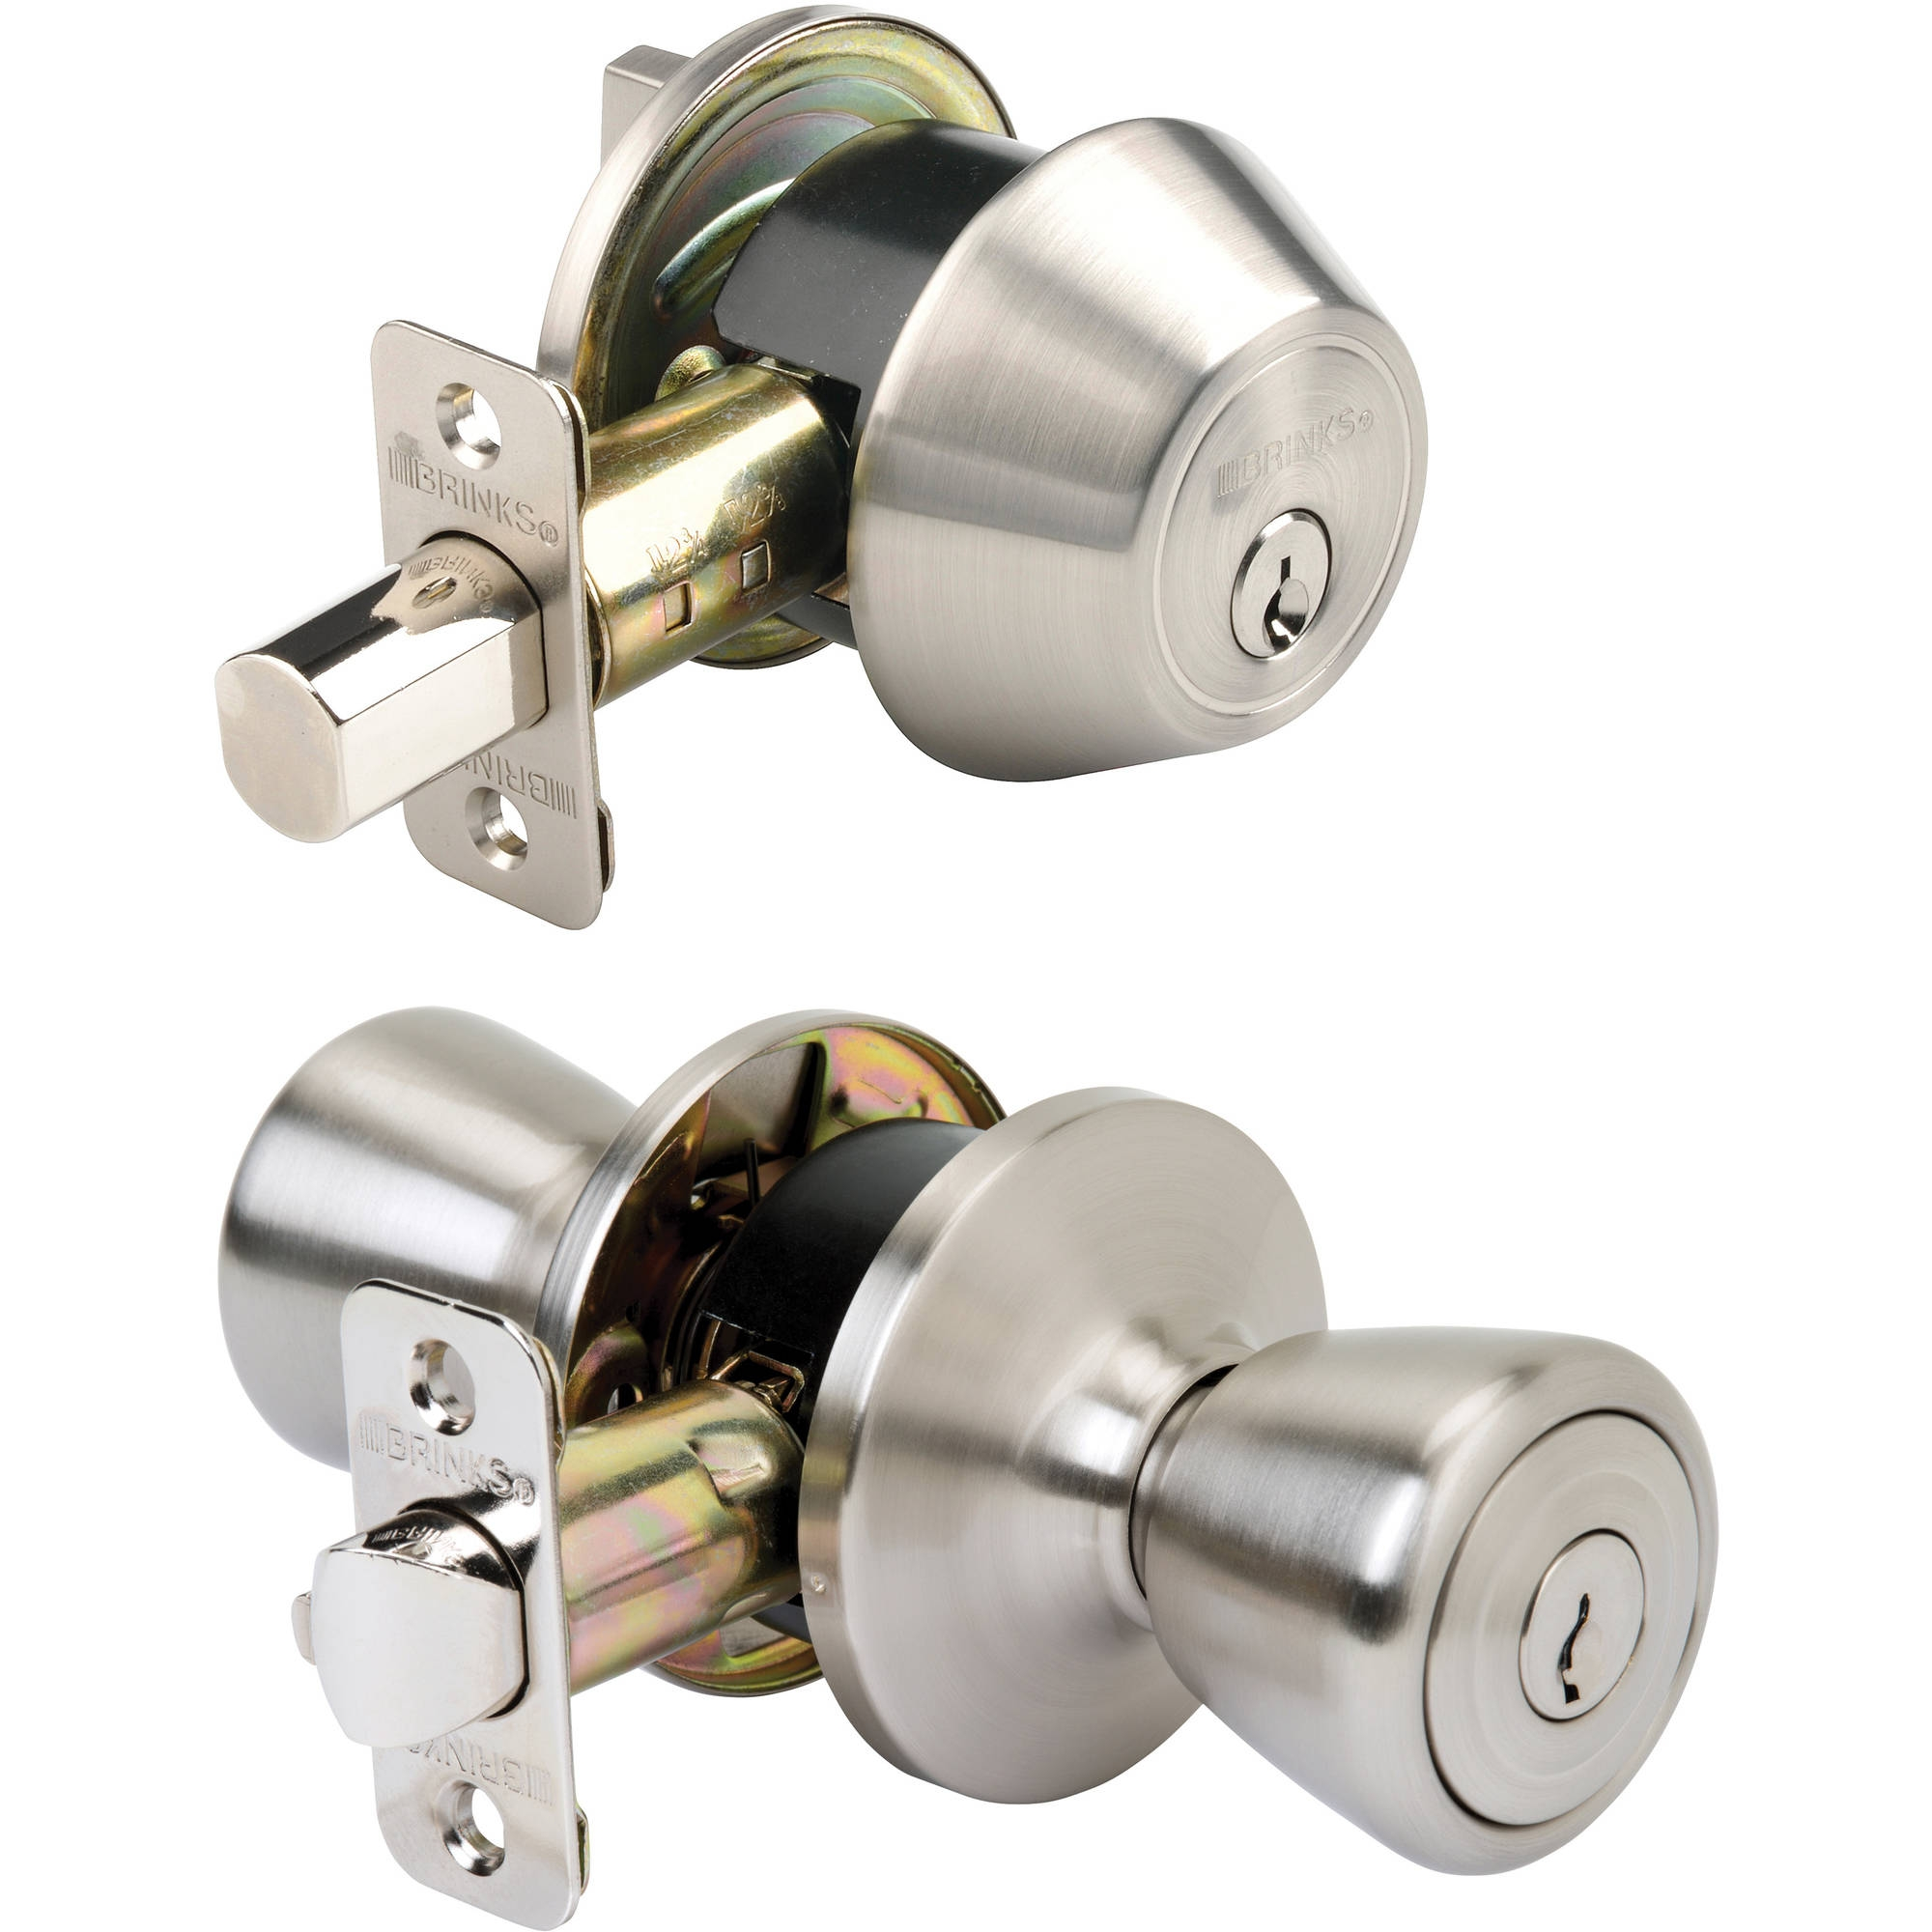 Permalink to Plastic Door Knob Lock